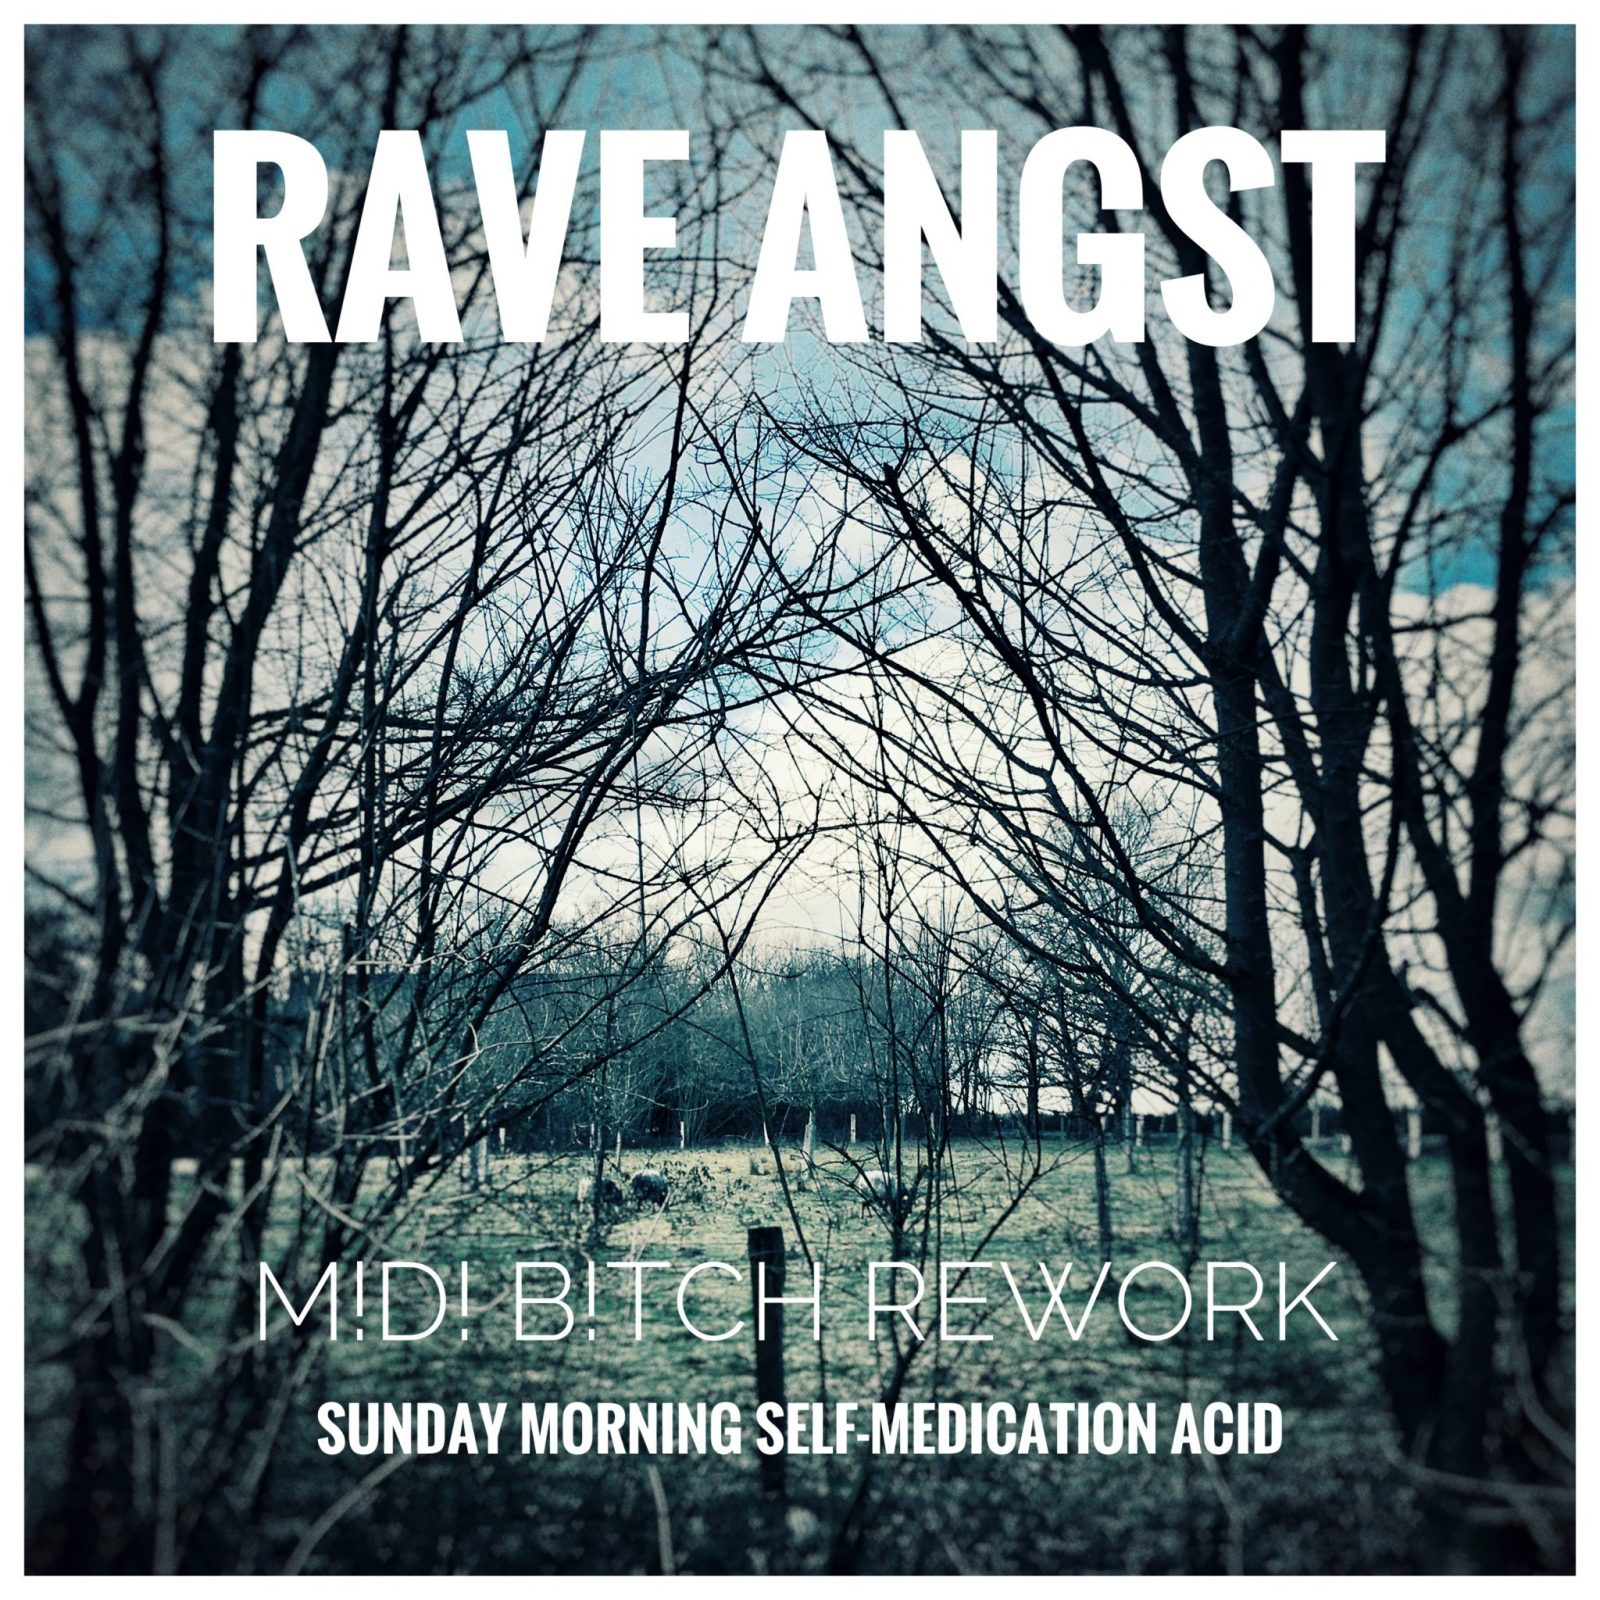 Rave Angst & Midi Bitch rework - Sunday Morning Self-Medication Acid